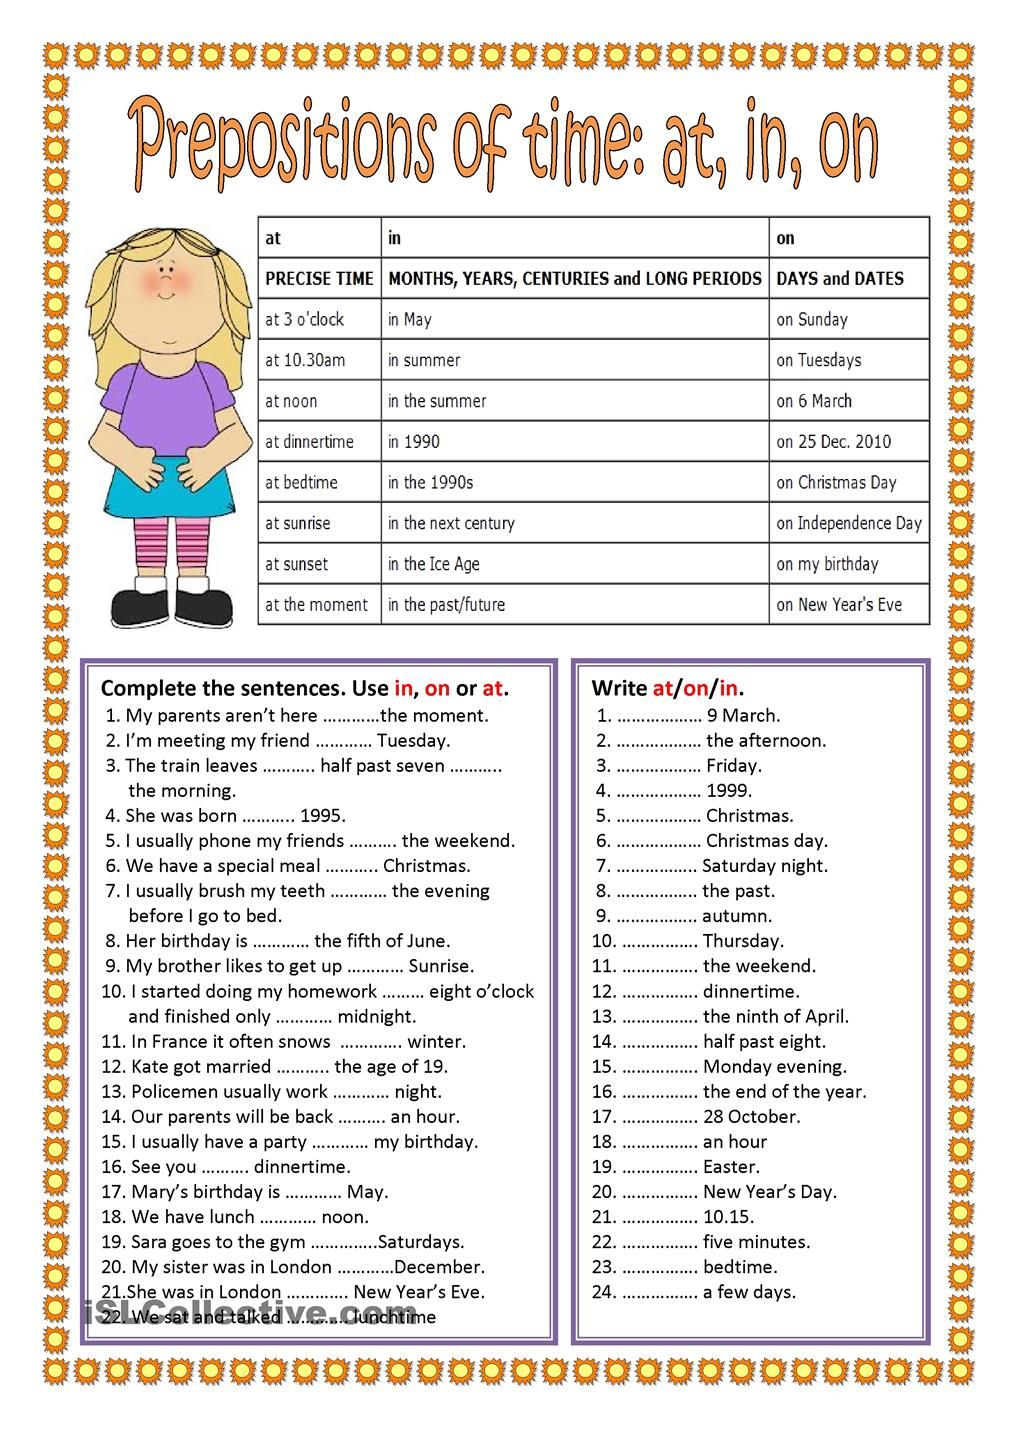 Prepositions Of Time  Поиск в Google  Worksheets  Pinterest  Prepositions, Exercises And English